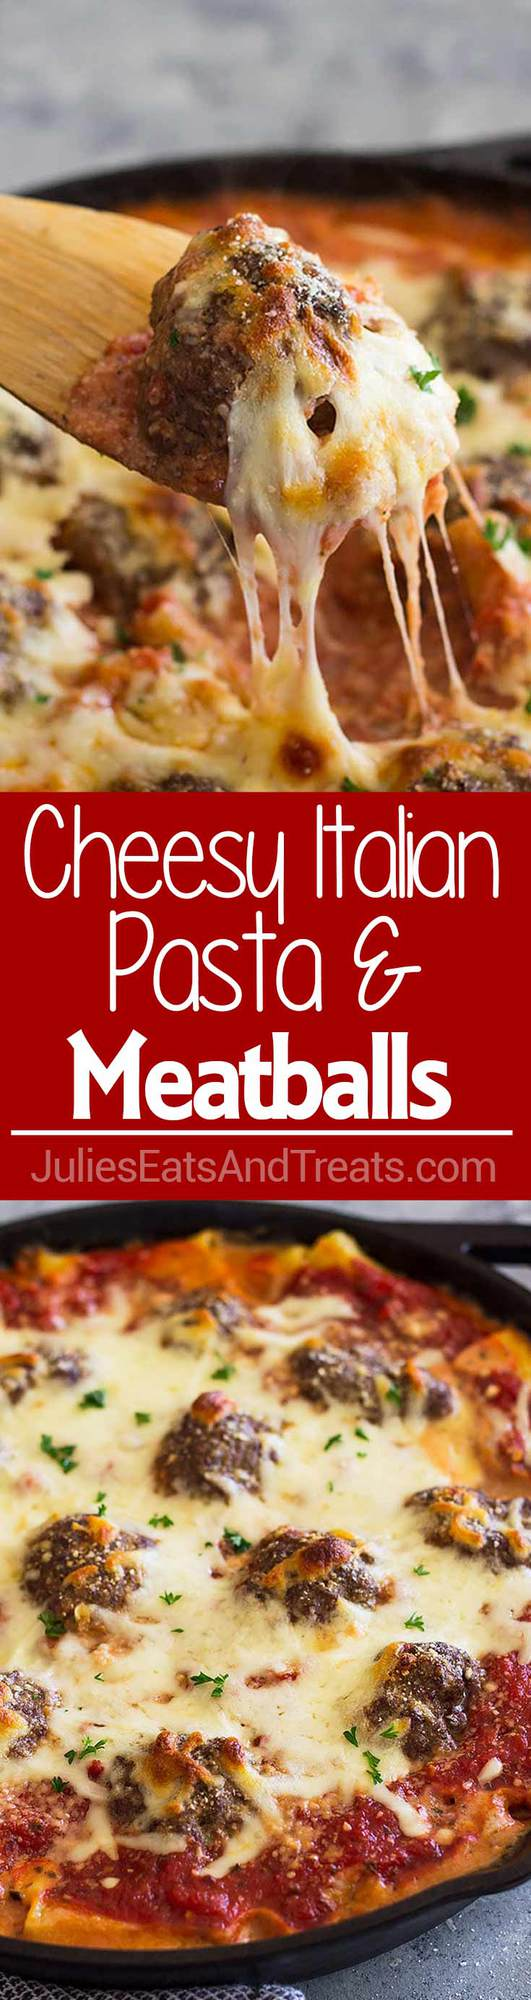 Cheesy Italian Pasta and Meatballs is pure comfort food! Tender and juicy meatballs baked in an easy homemade marinara sauce and cheesy pasta for the perfect meatball pasta!